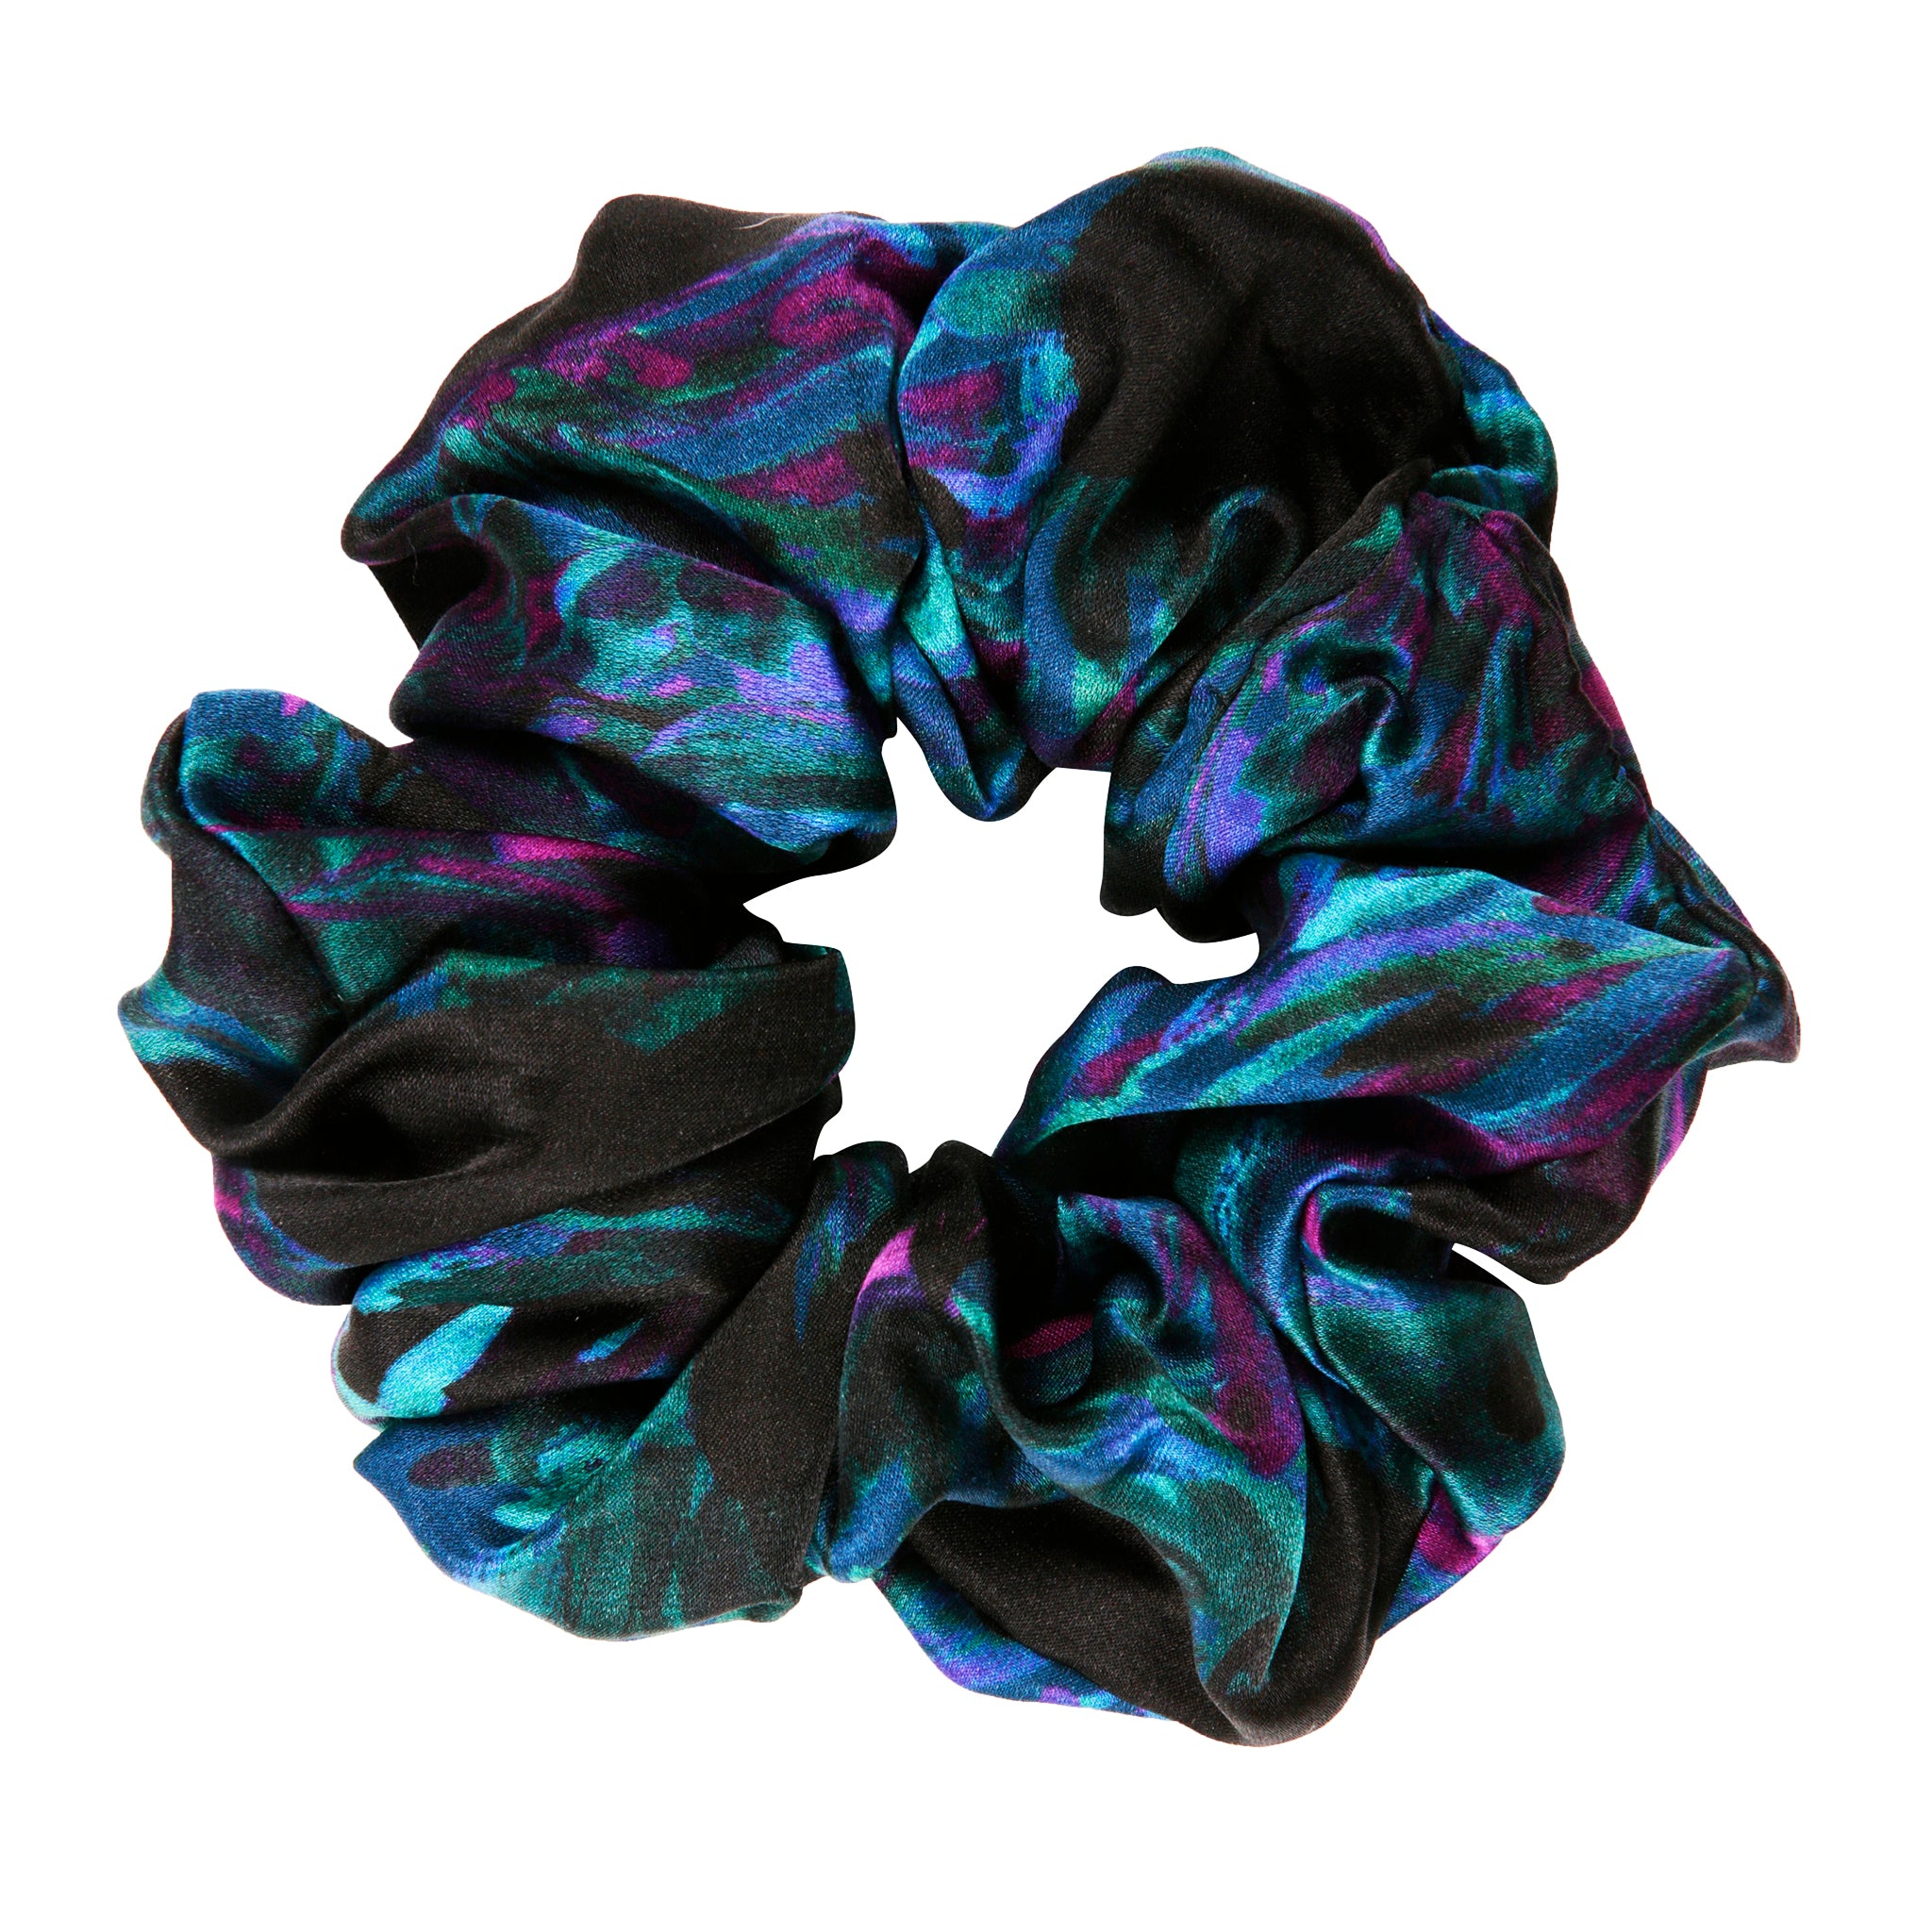 Water Scrunchie in Black